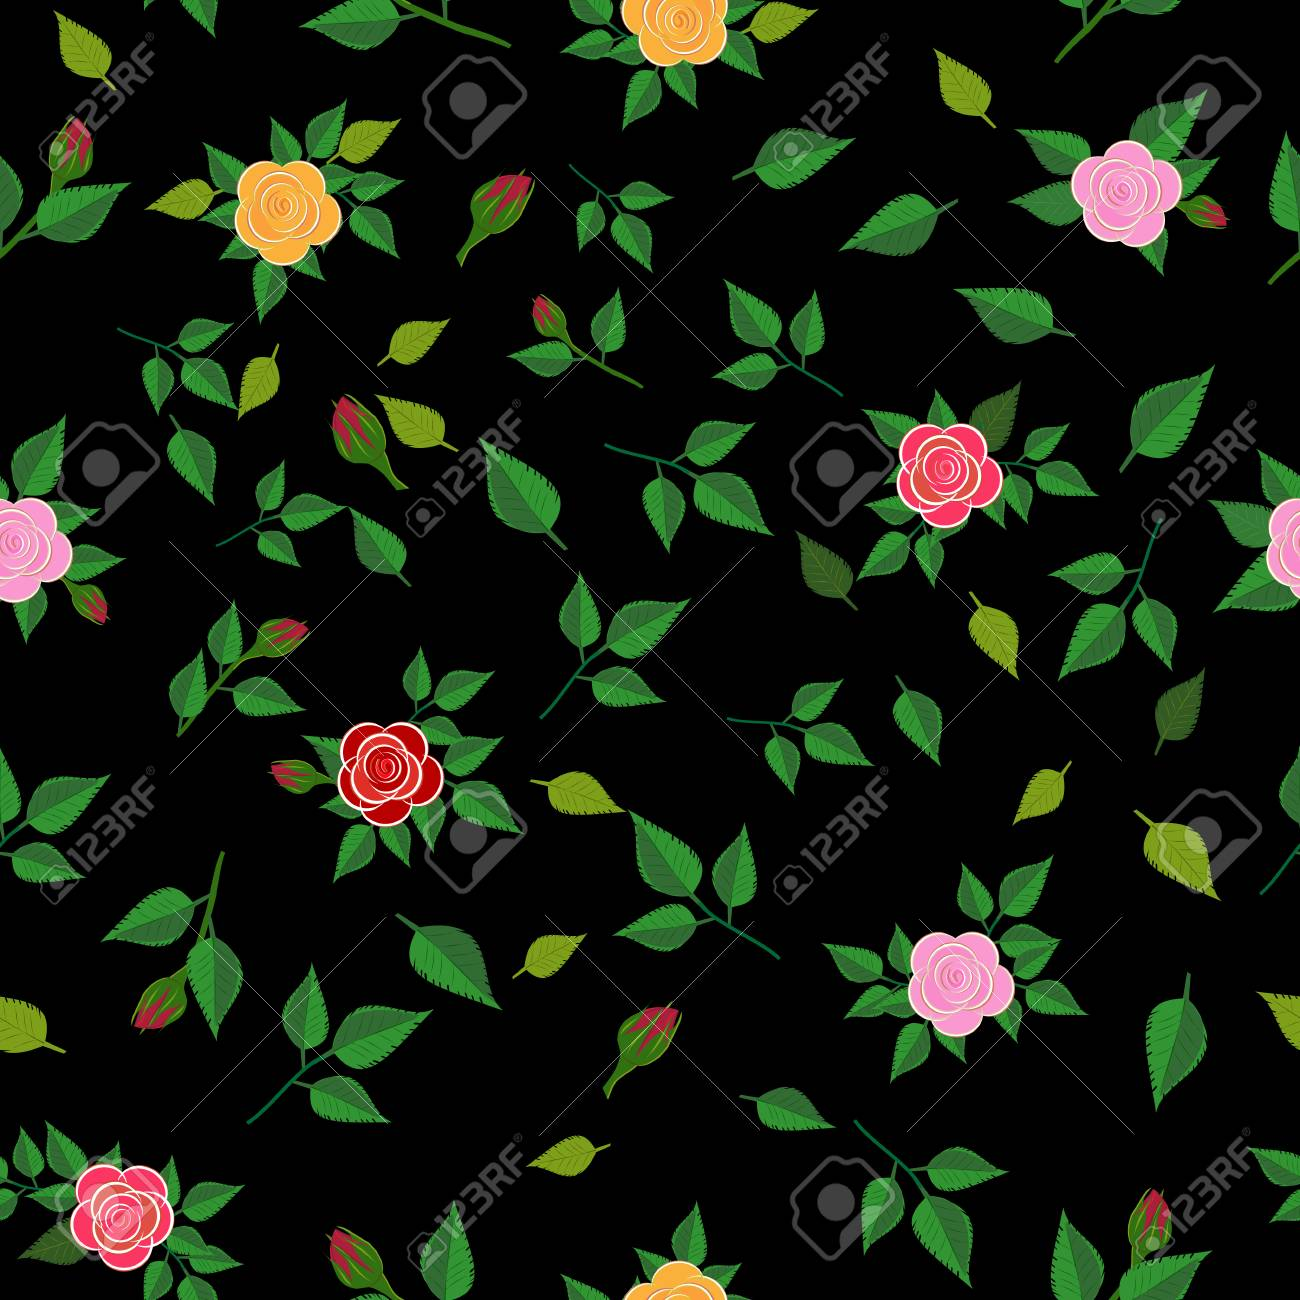 flowery background.html